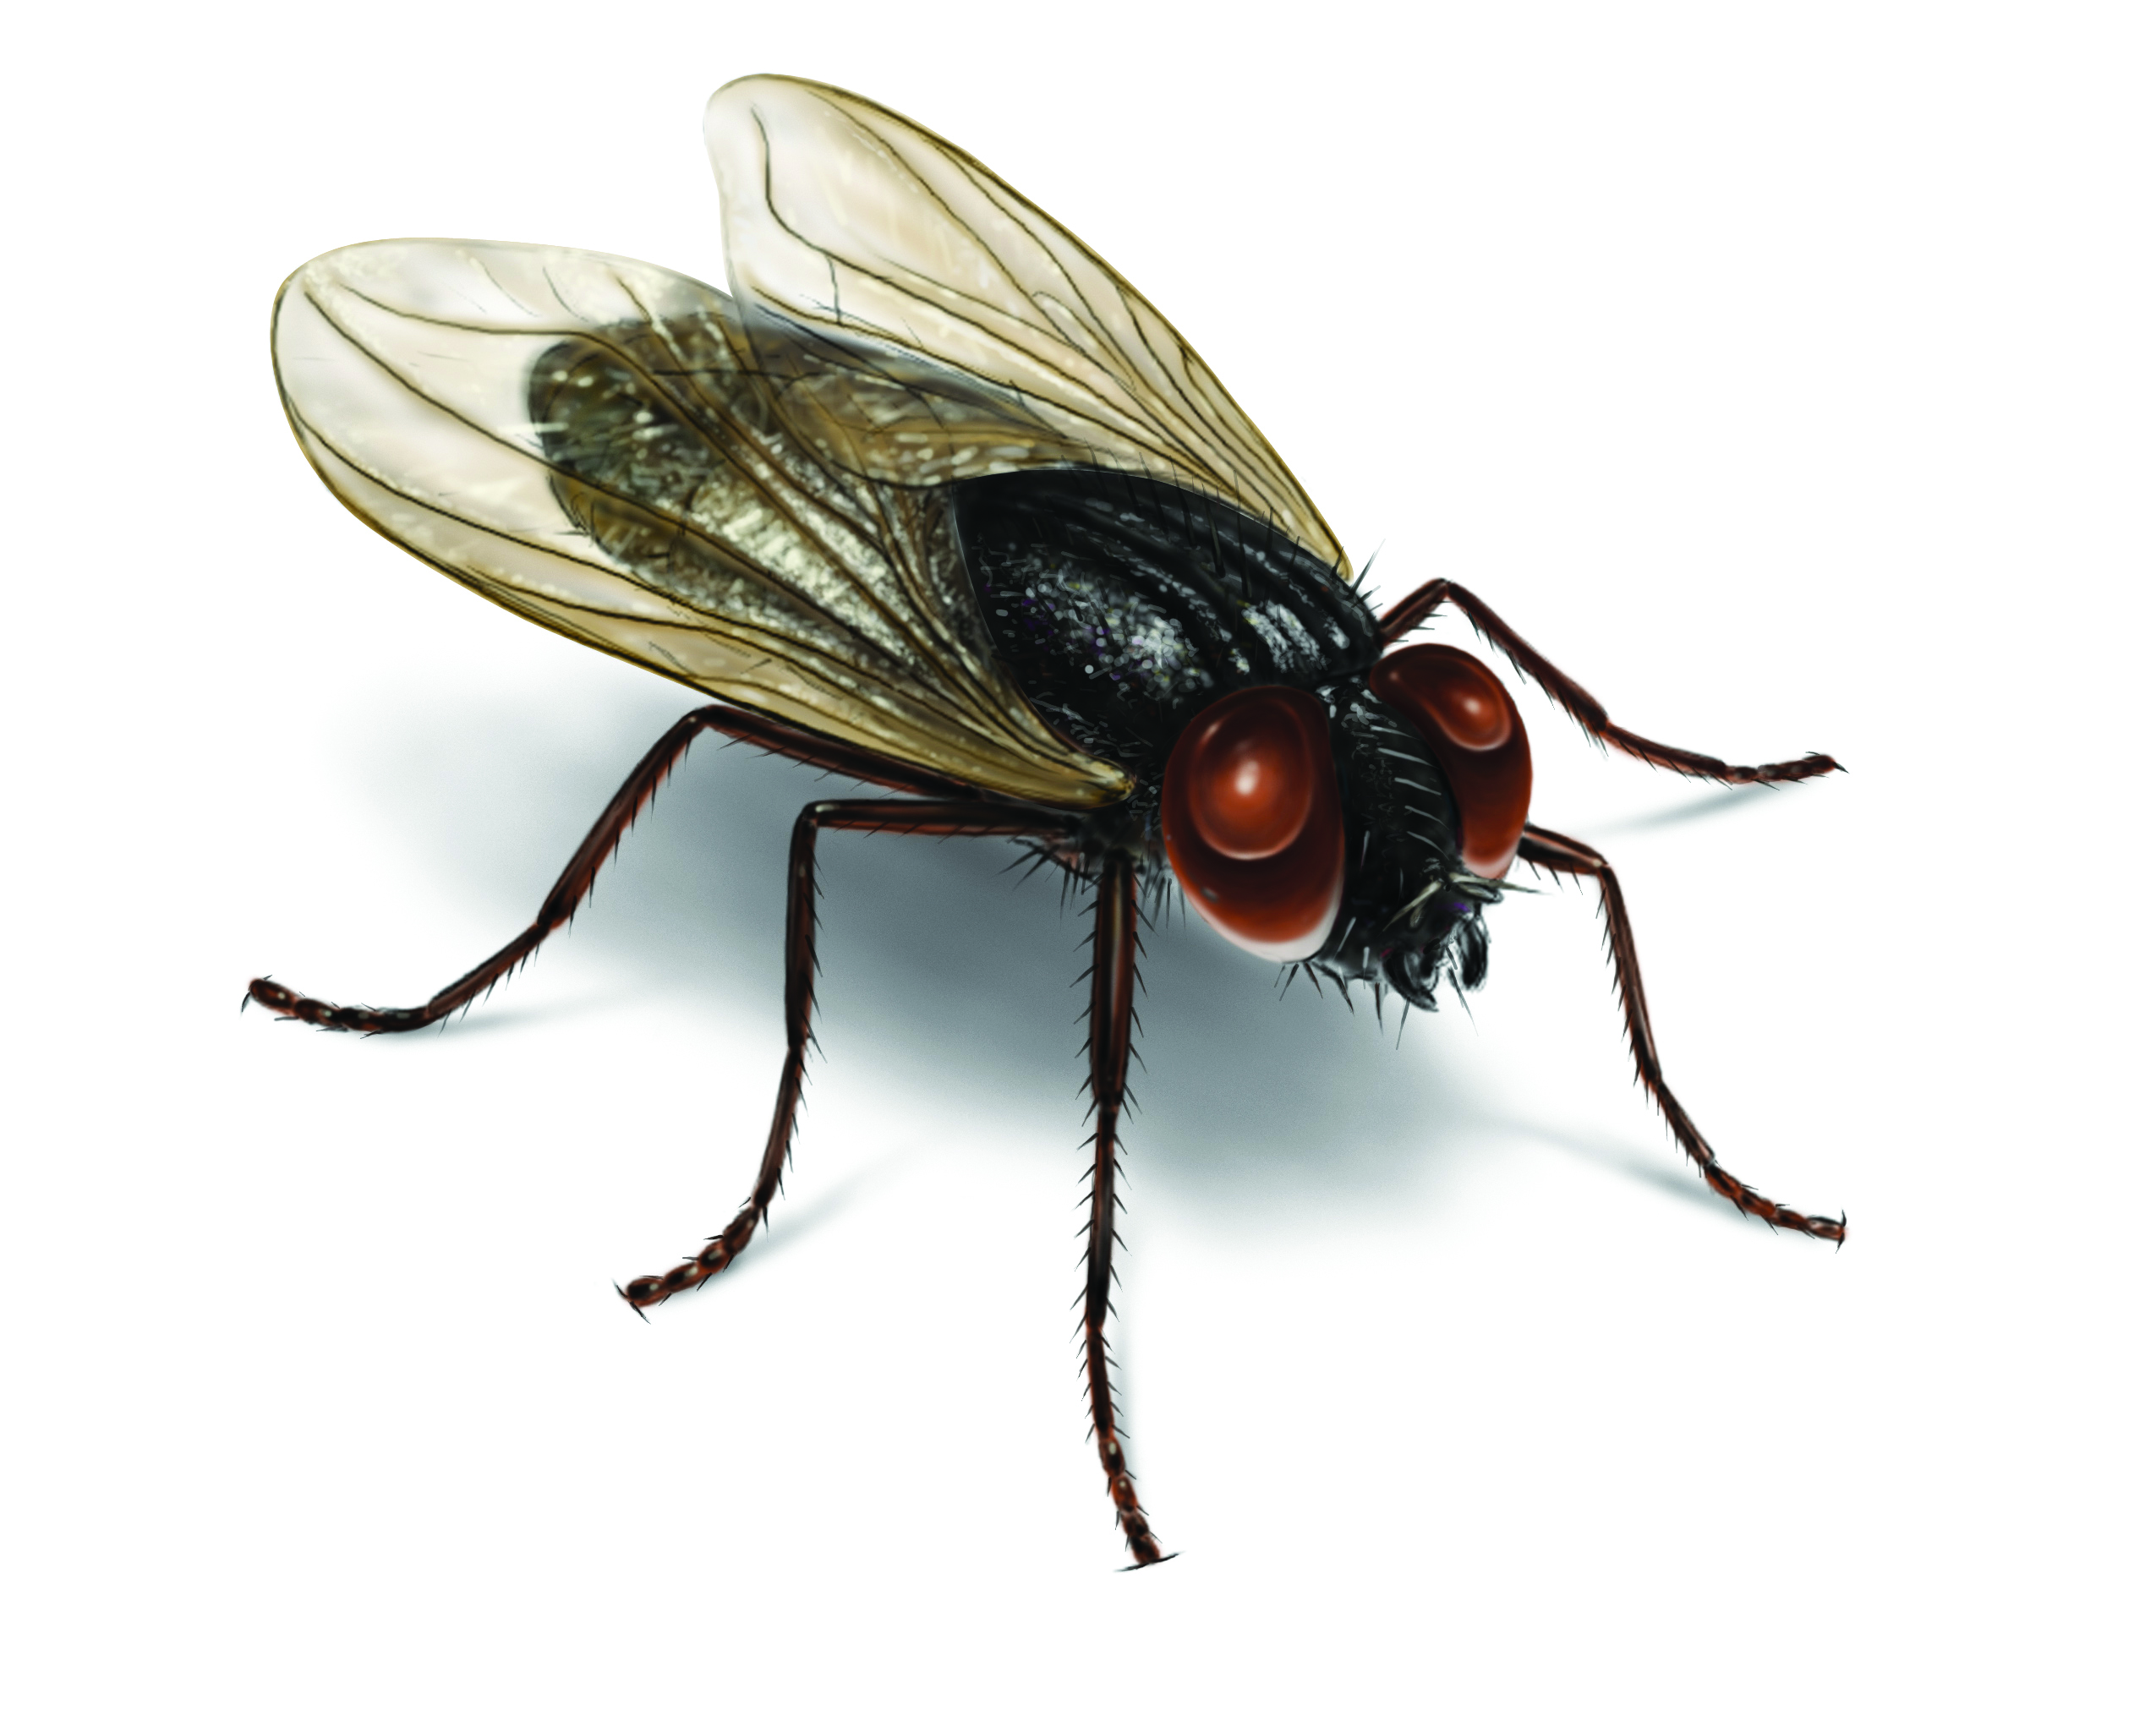 Decent How Did I Get House House Fly Control Get Rid House Flies Small Flies House All House Plant Soil Small Flies A Sudden Uk houzz-02 Small Flies In House